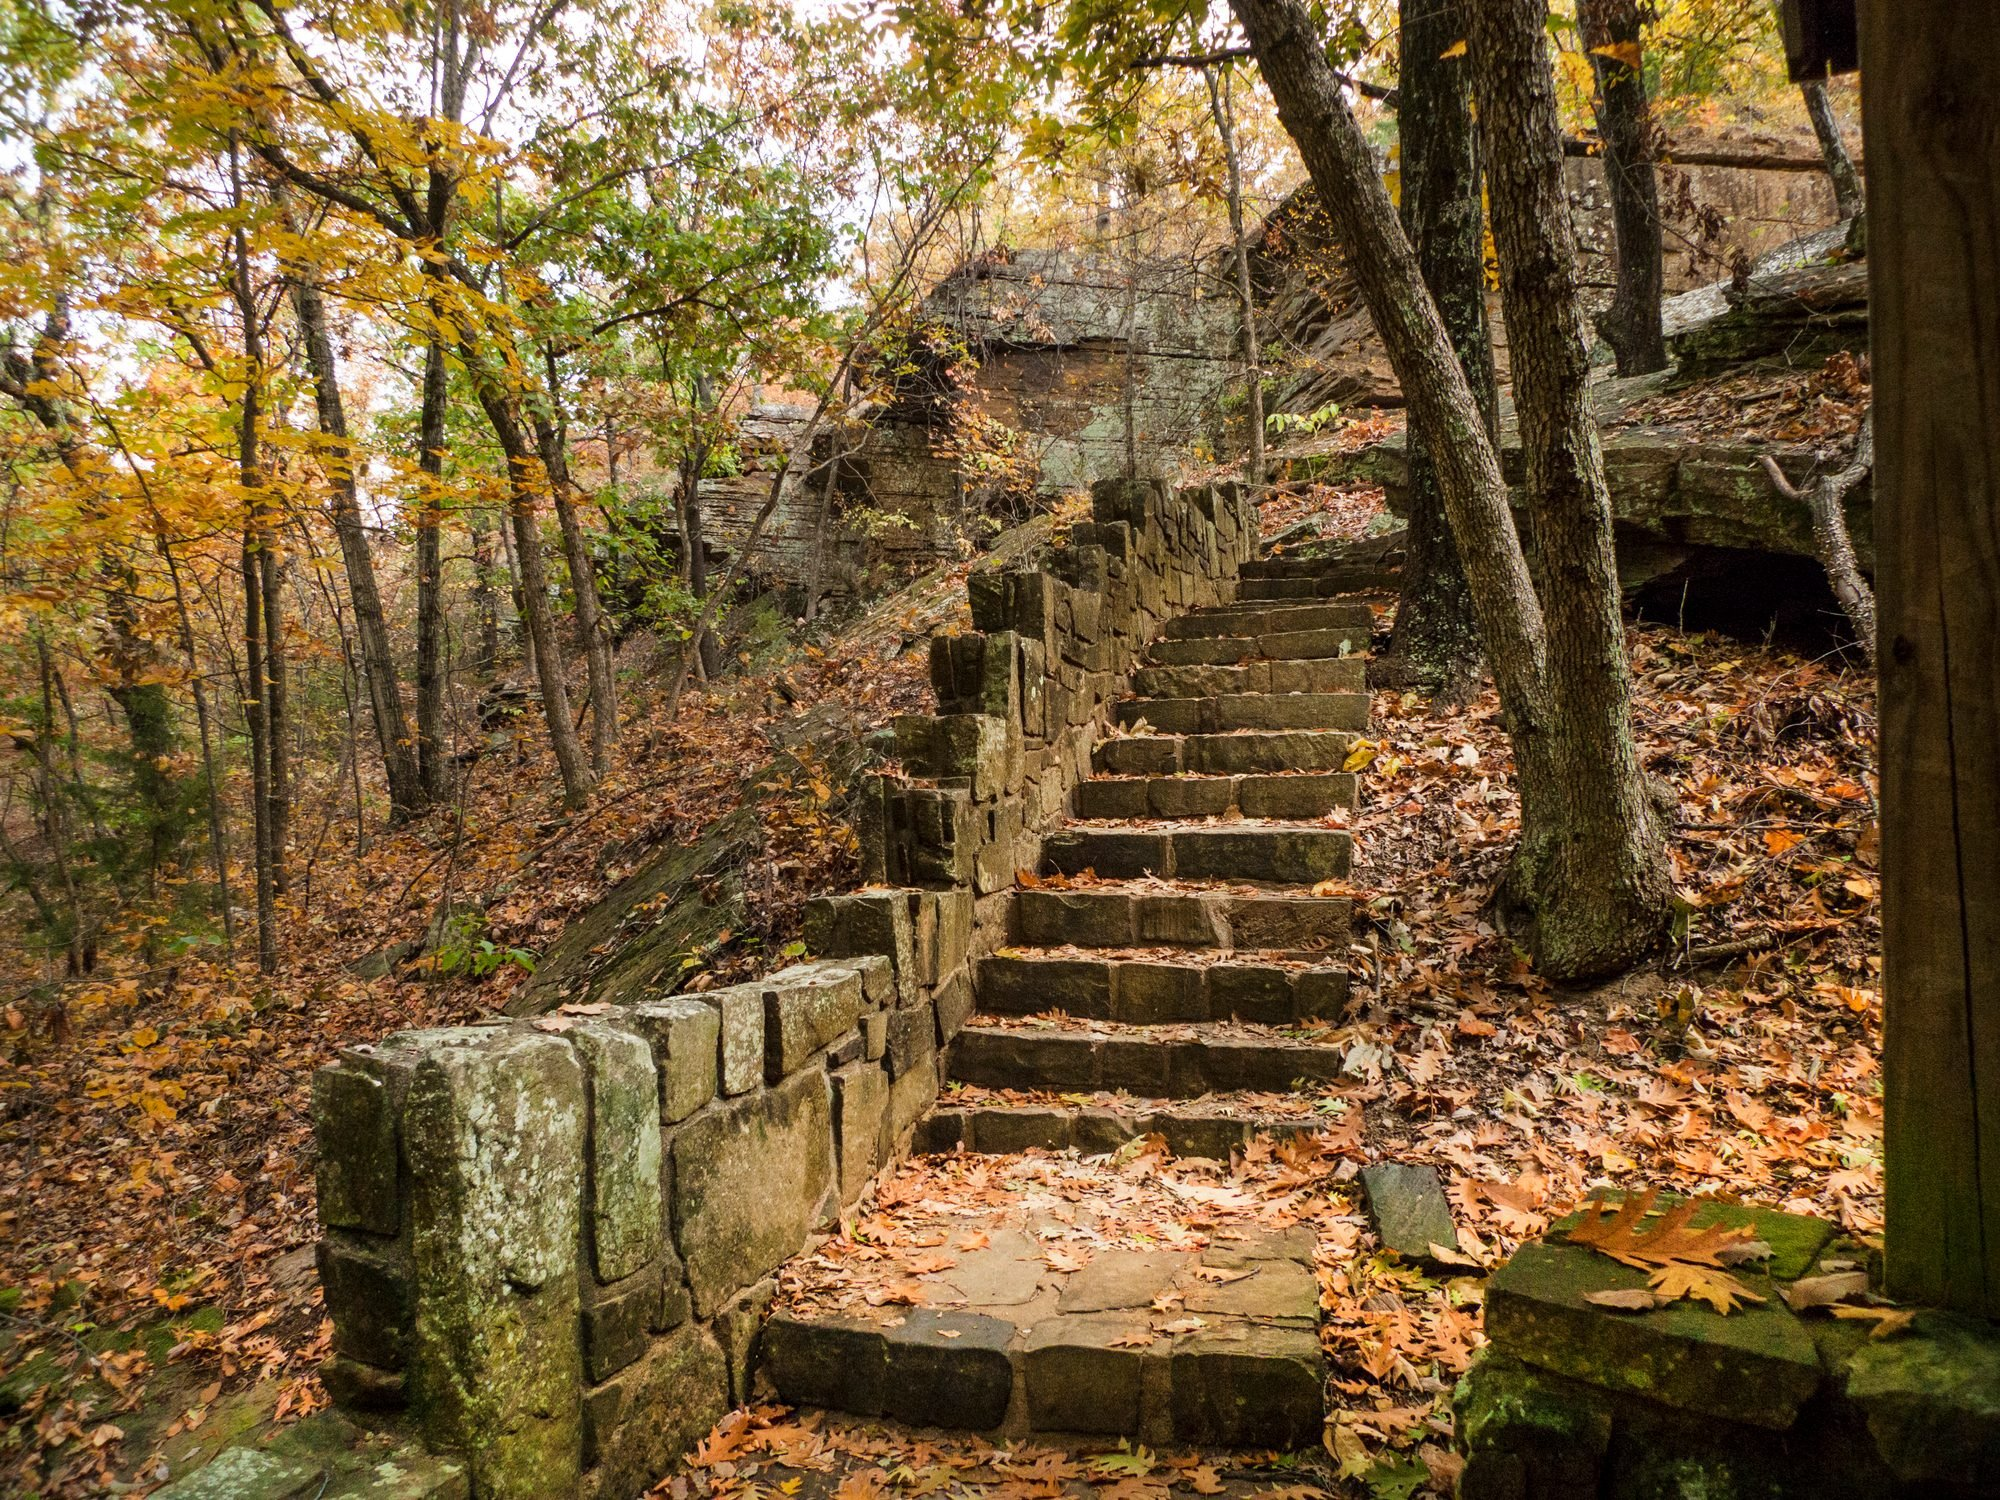 Mysterious stone staircase in an autumn forest